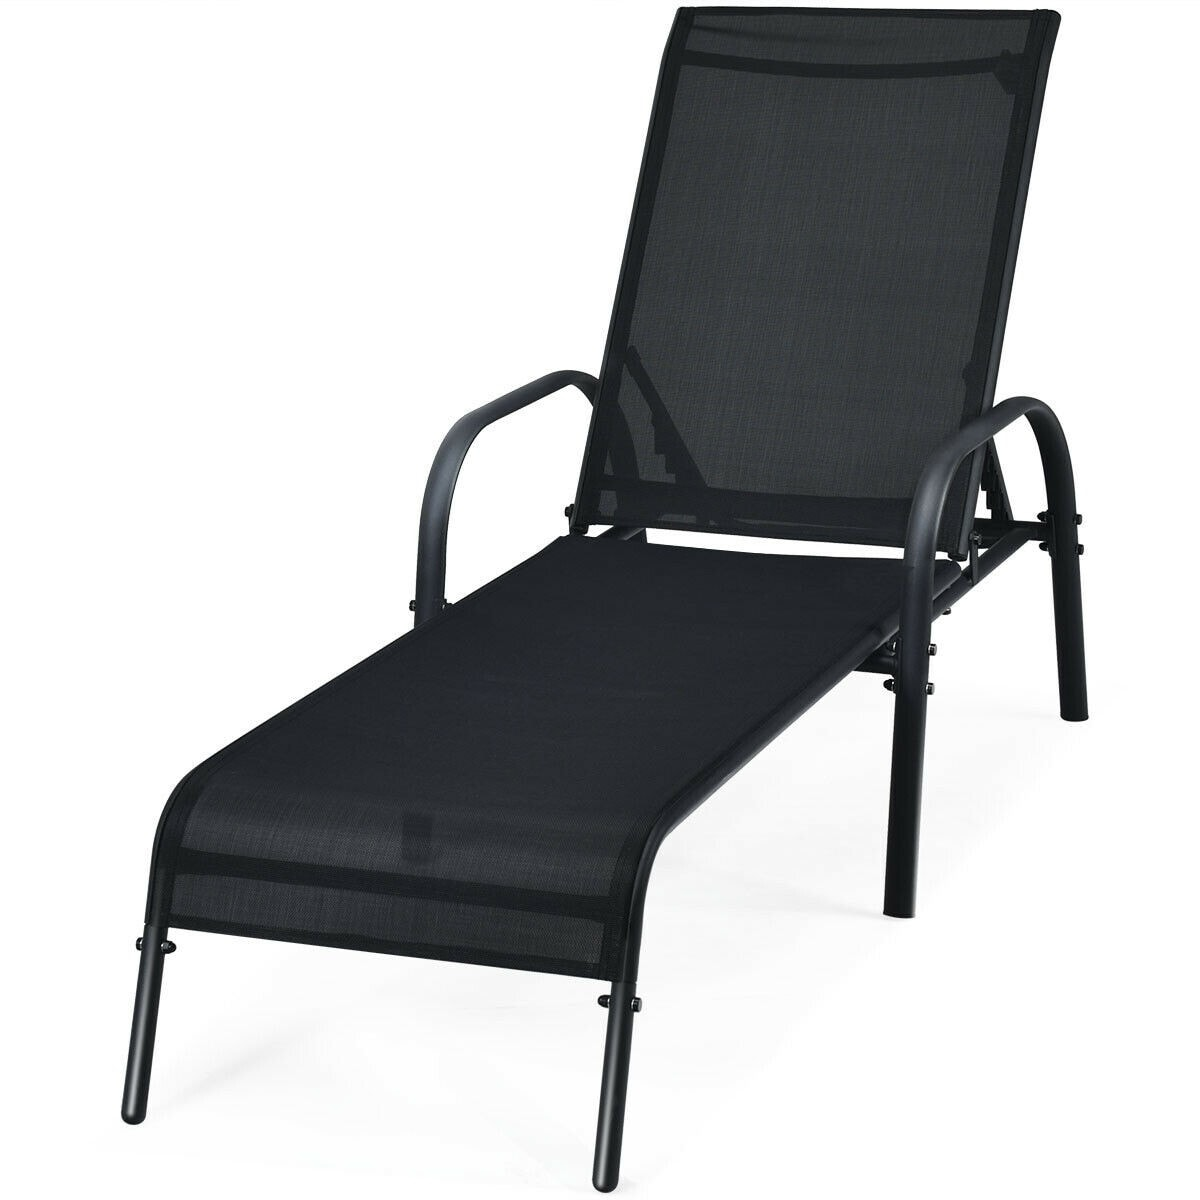 Shop Outdoor Patio Chaise Lounge Chair Sling Lounge Recliner Overstock 32306190